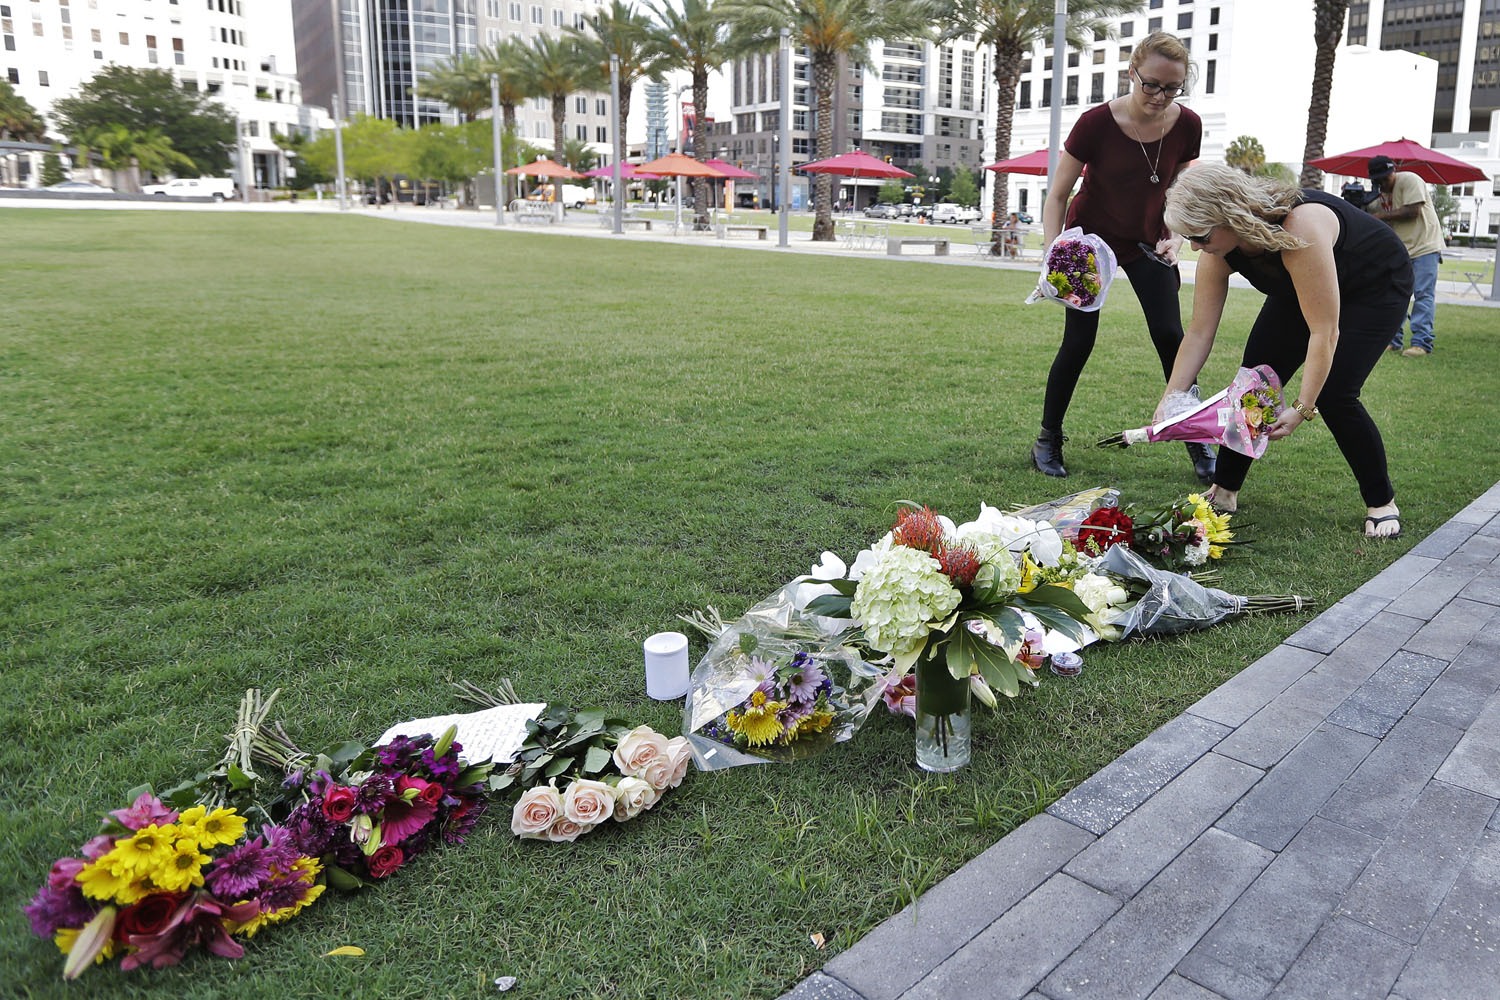 Two women place flowers for the victims of the fatal shootings at Pulse Orlando nightclub at a makeshift memorial Monday, June 13, 2016, in Orlando, Fla. (Chris O'Meara / AP)